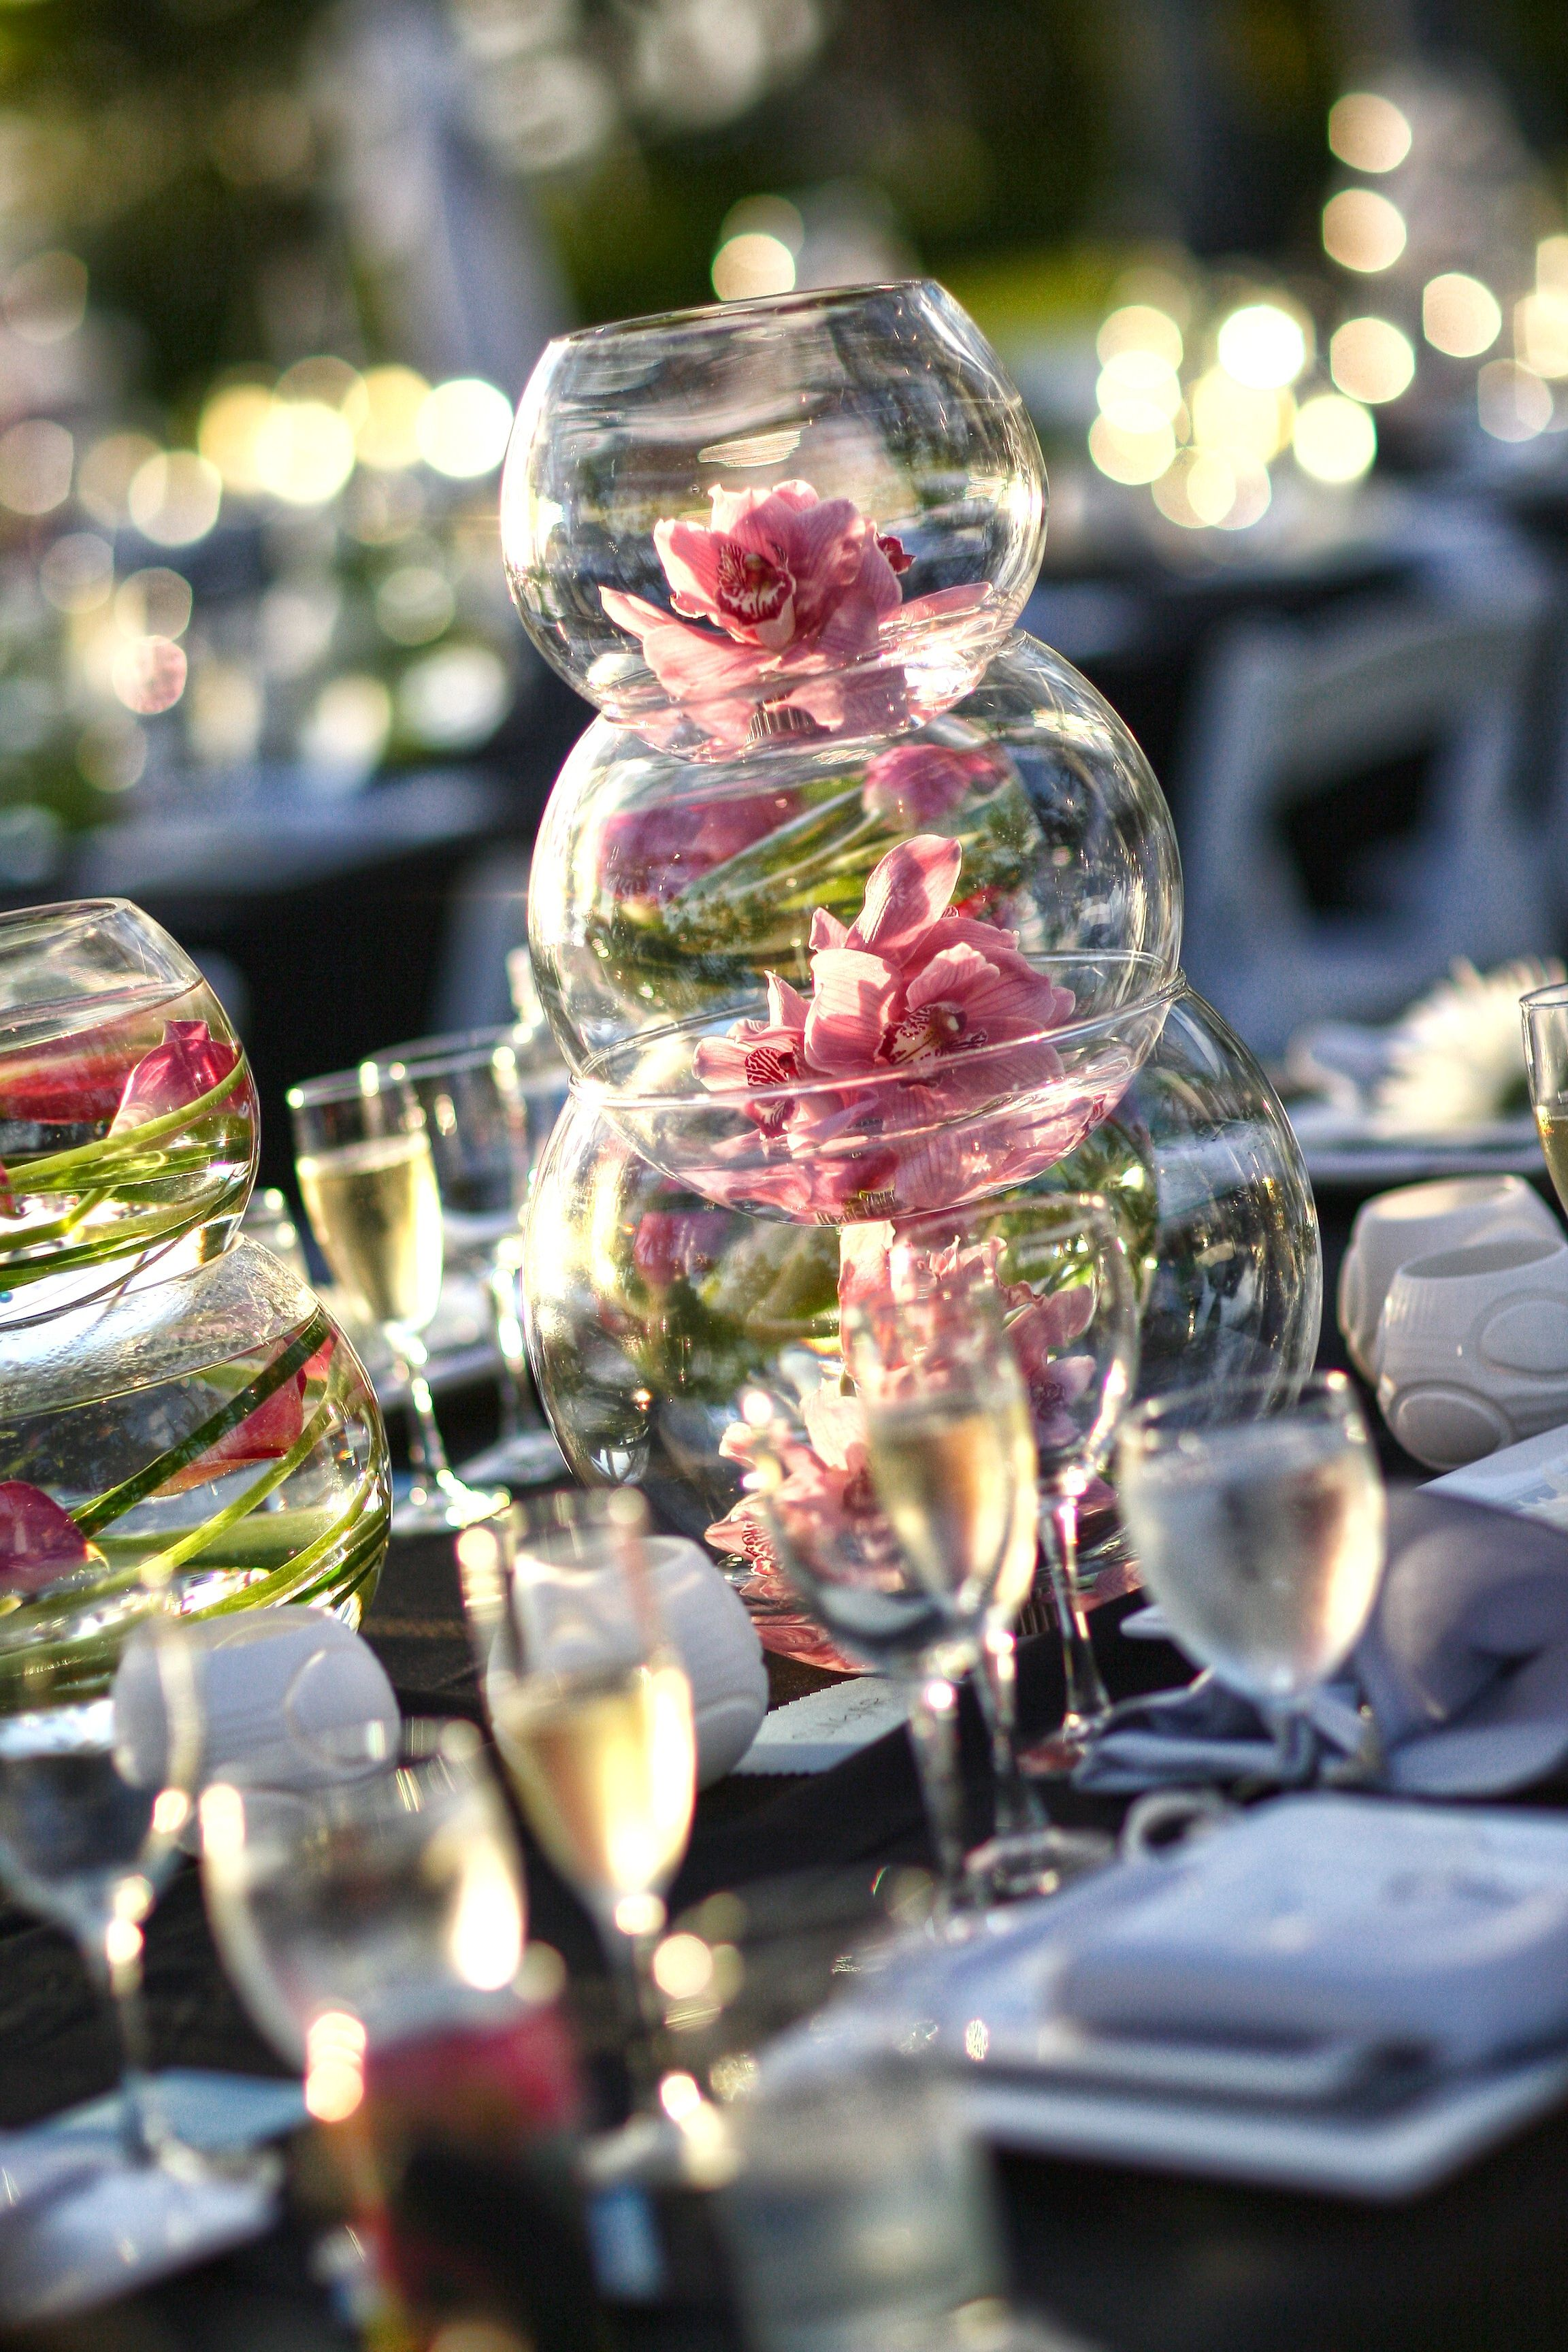 Find This Pin And More On Modern Centerpieces By Micemaeda